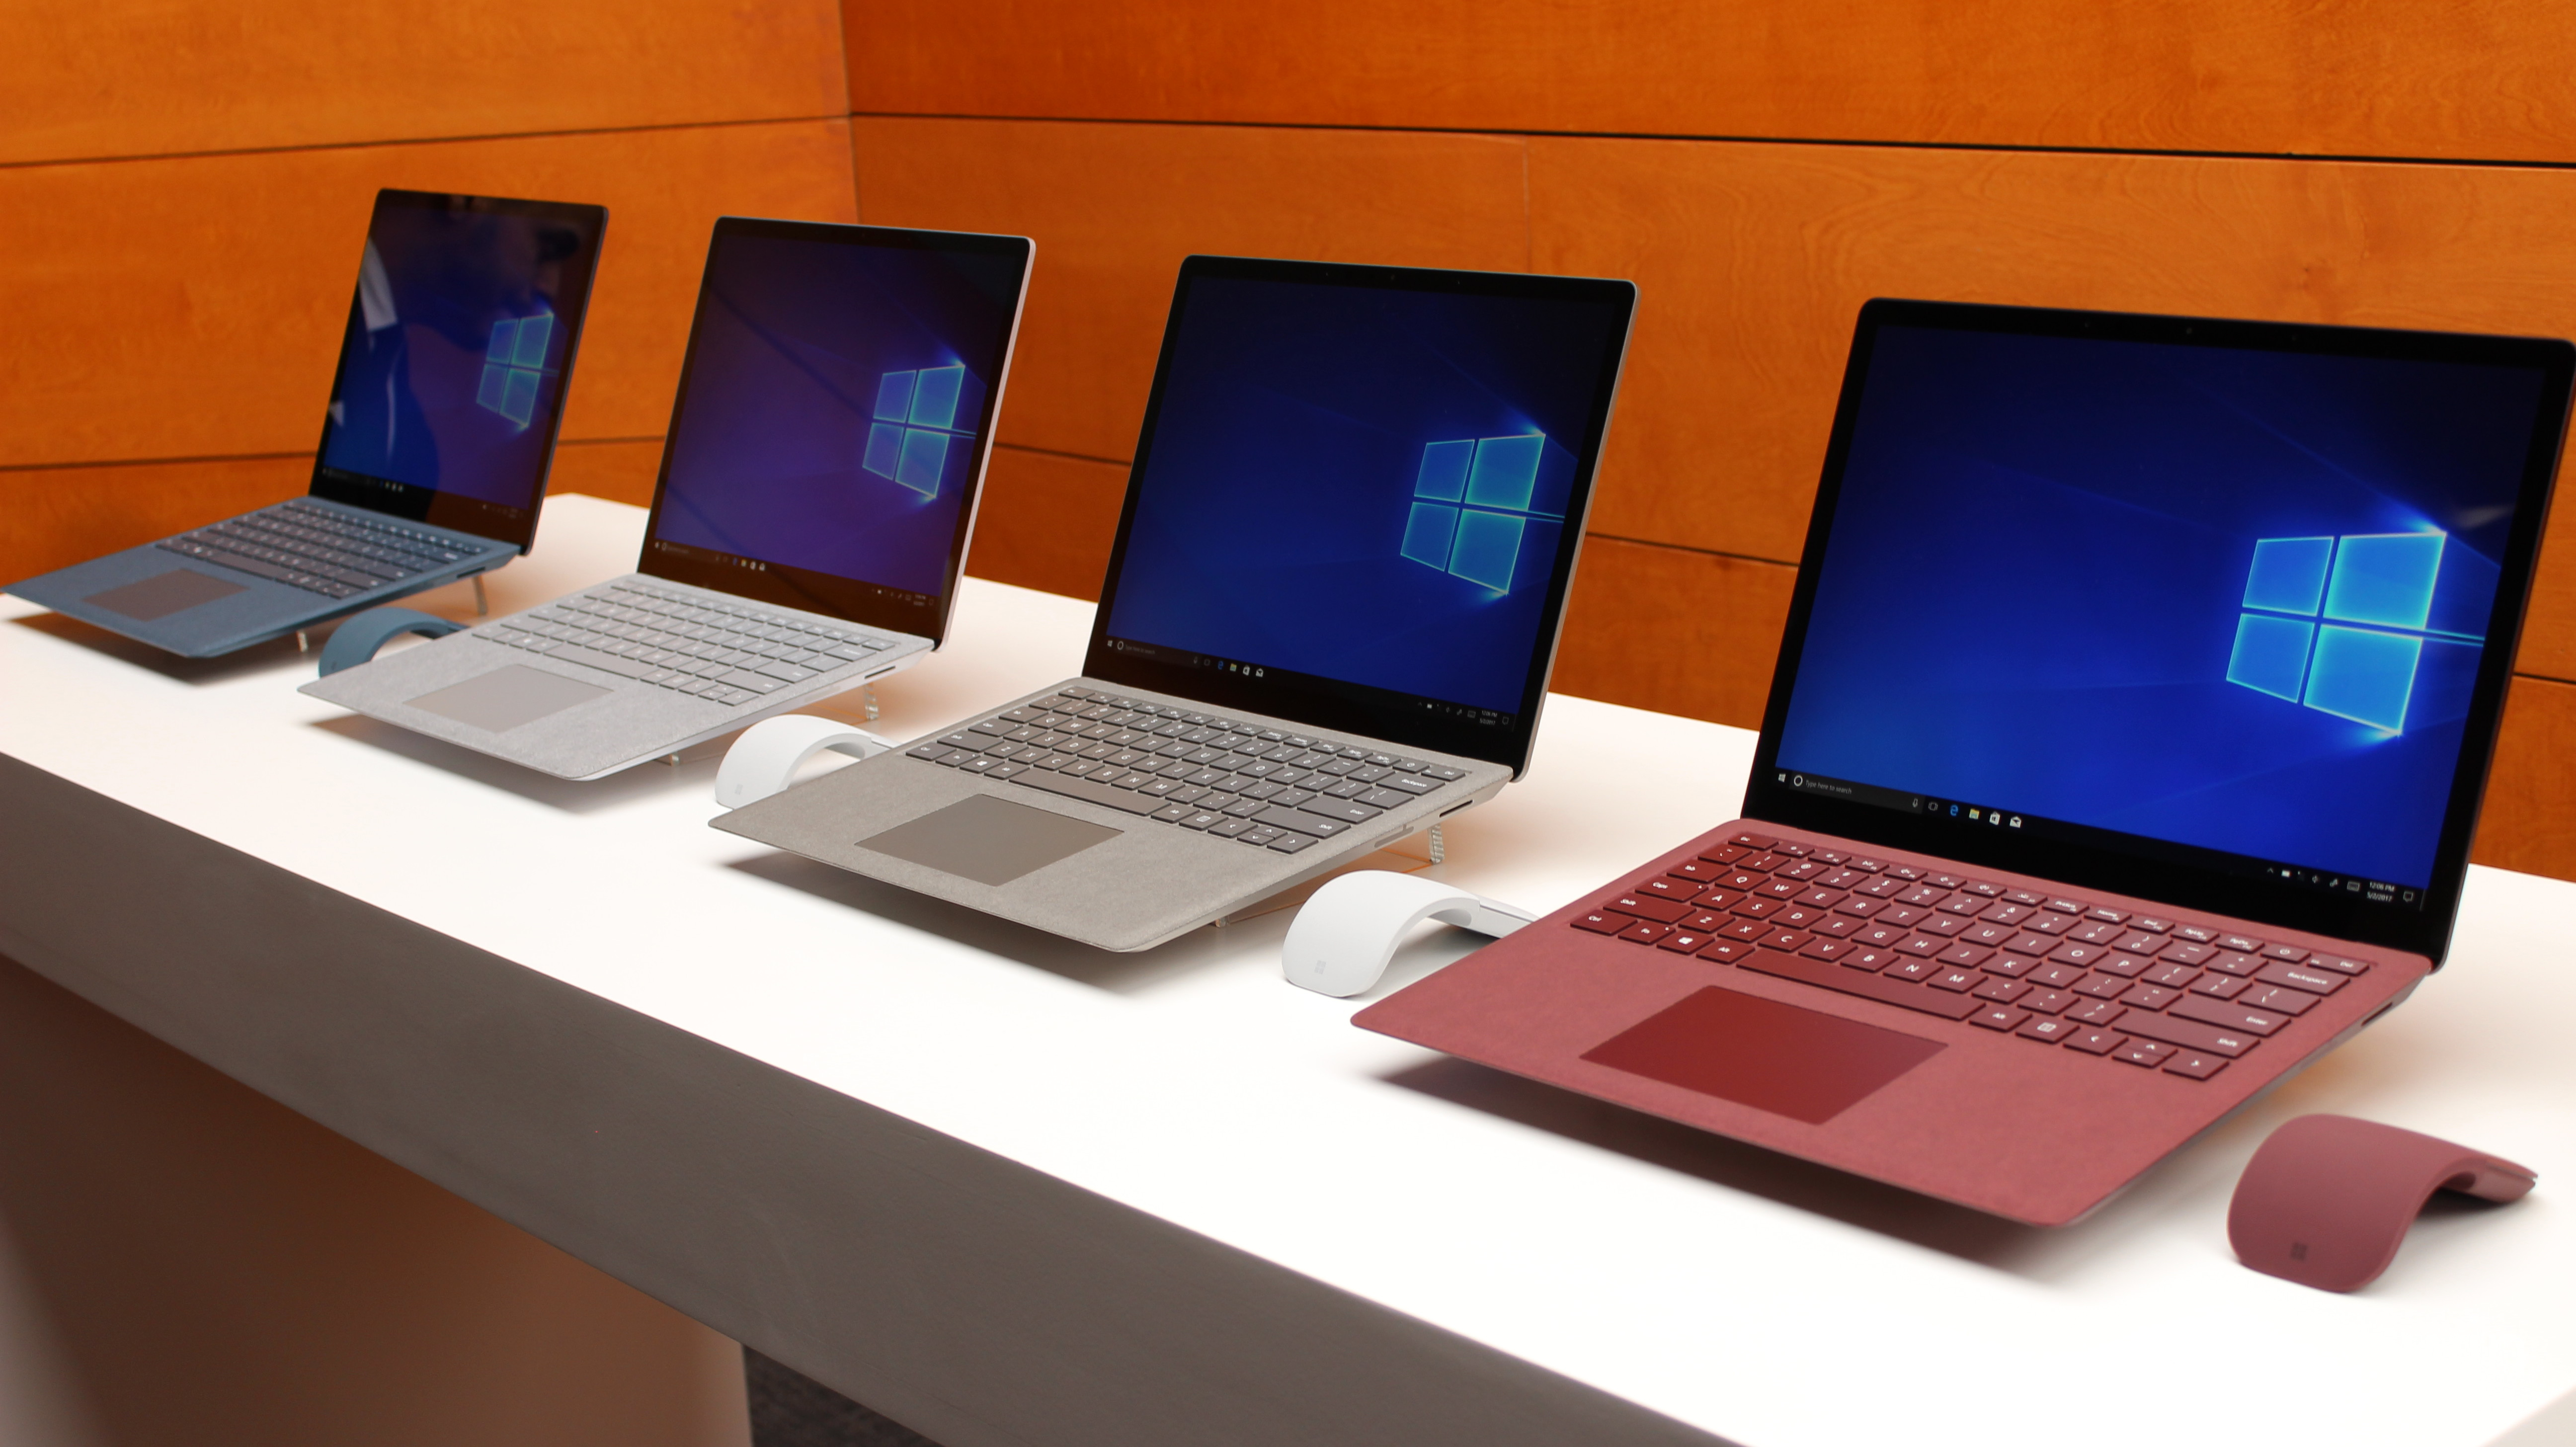 Microsoft Store offers a full line of the most trusted products in software and hardware, along with a huge selection of reliable computers, trendy smartphones, ultra-light tablets, laptops great for on the go, must-have notebooks and super-functional netbooks.